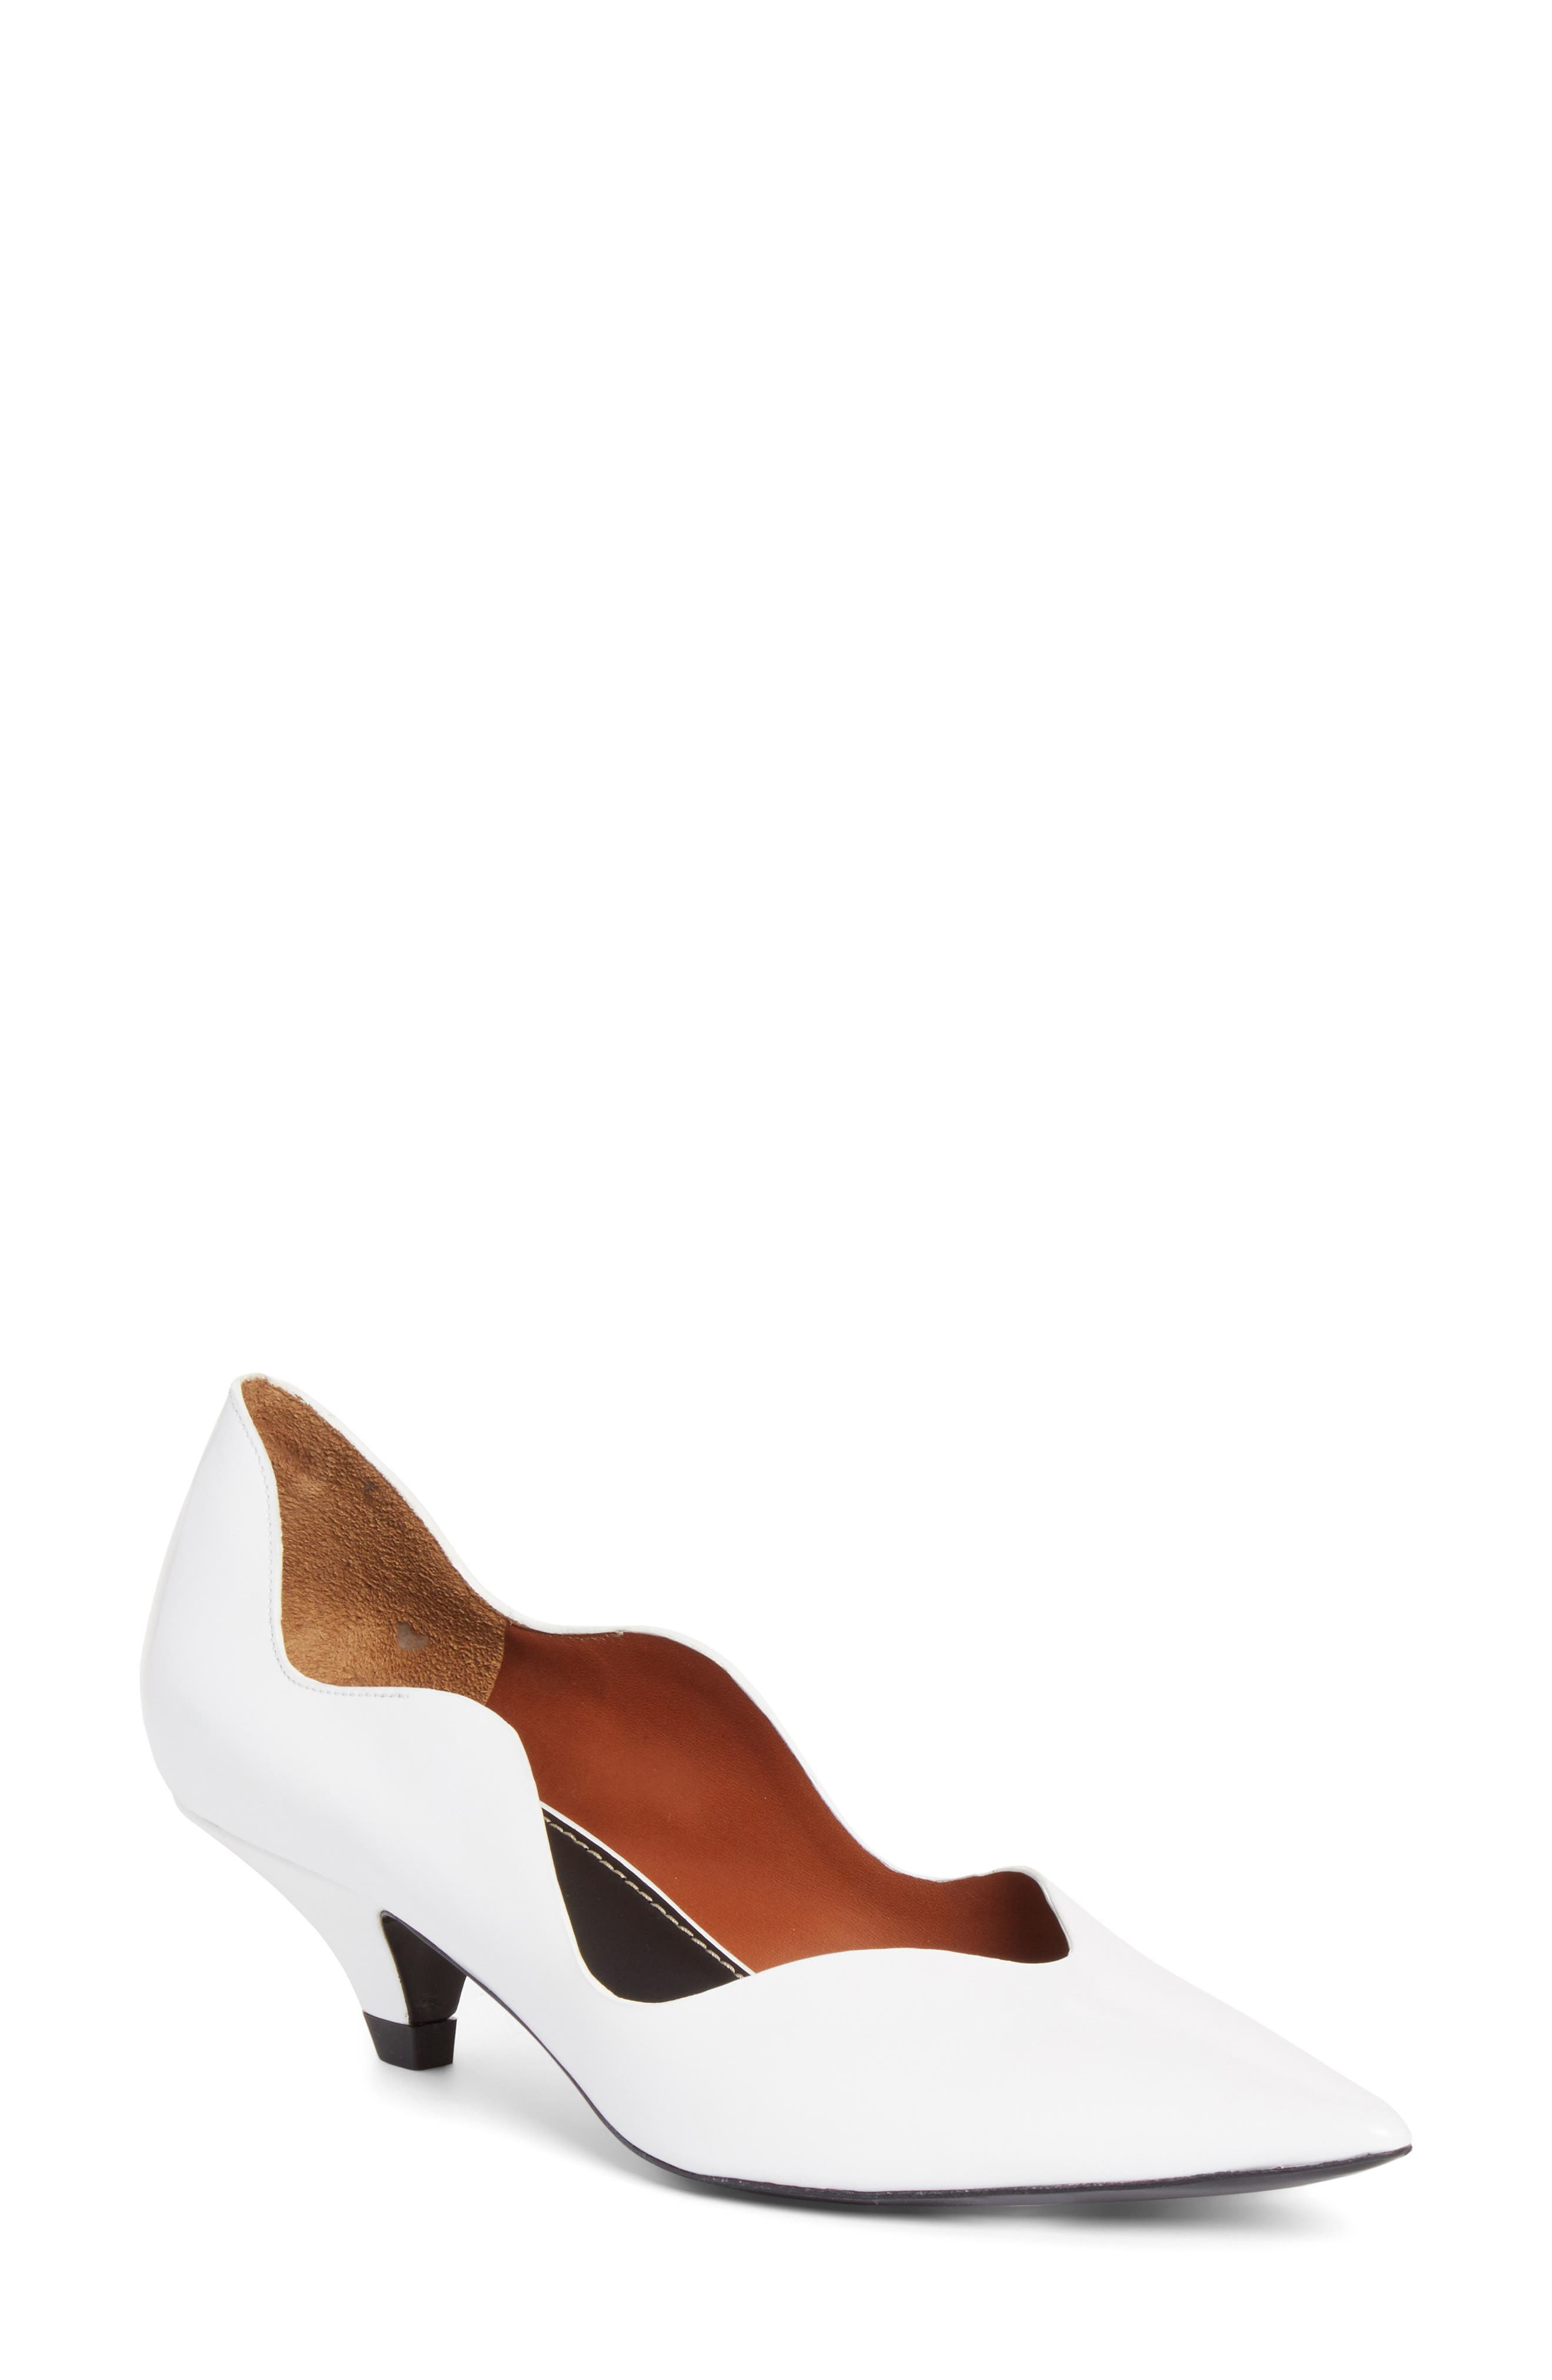 Wave Pointy Toe Pump,                         Main,                         color, WHITE